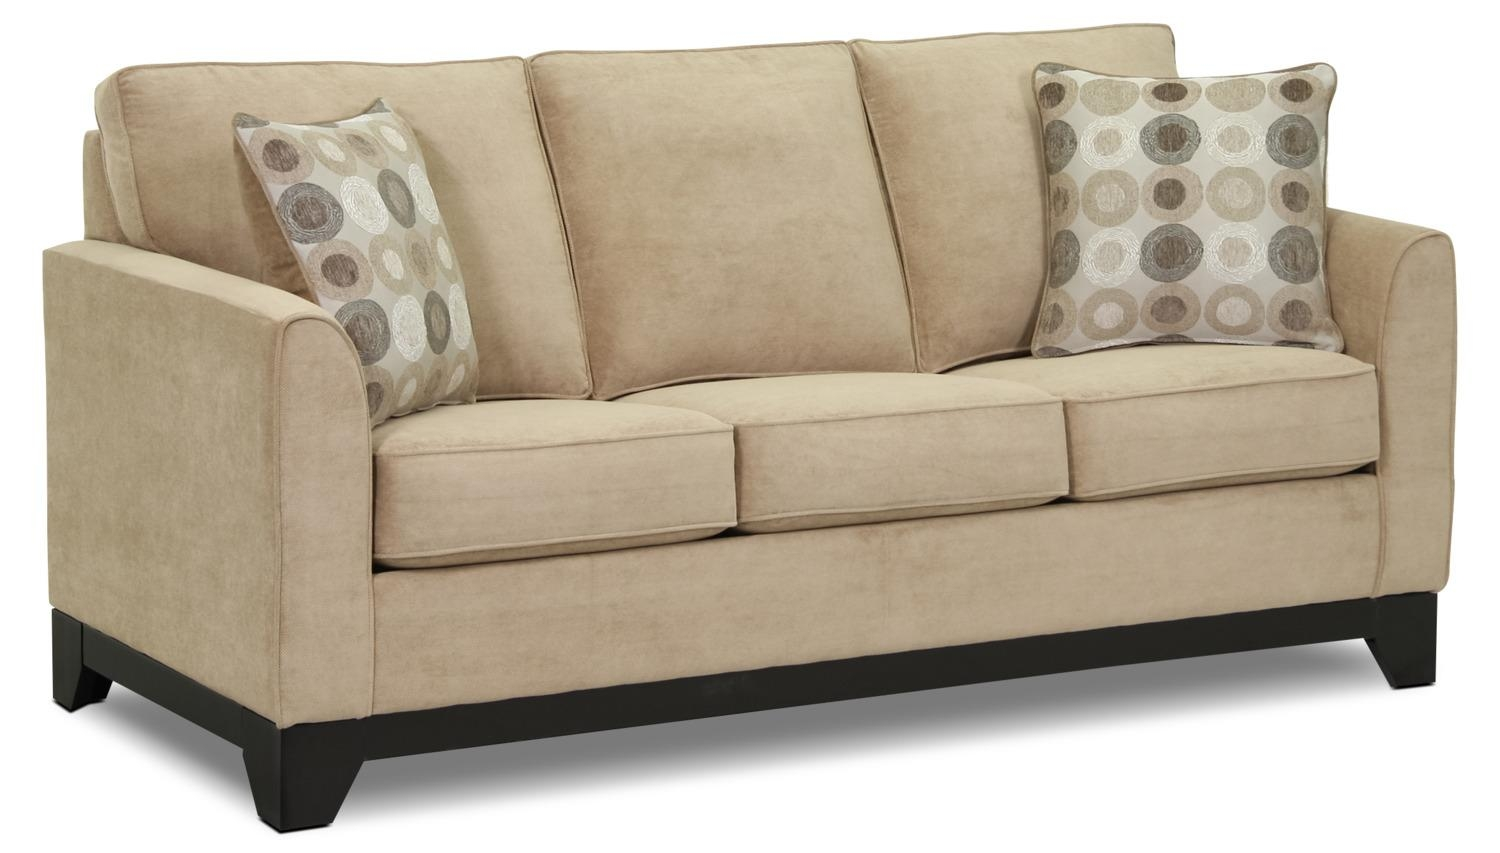 Sofa Beds & Futons | Leon's Throughout Sofa Beds (Image 13 of 20)